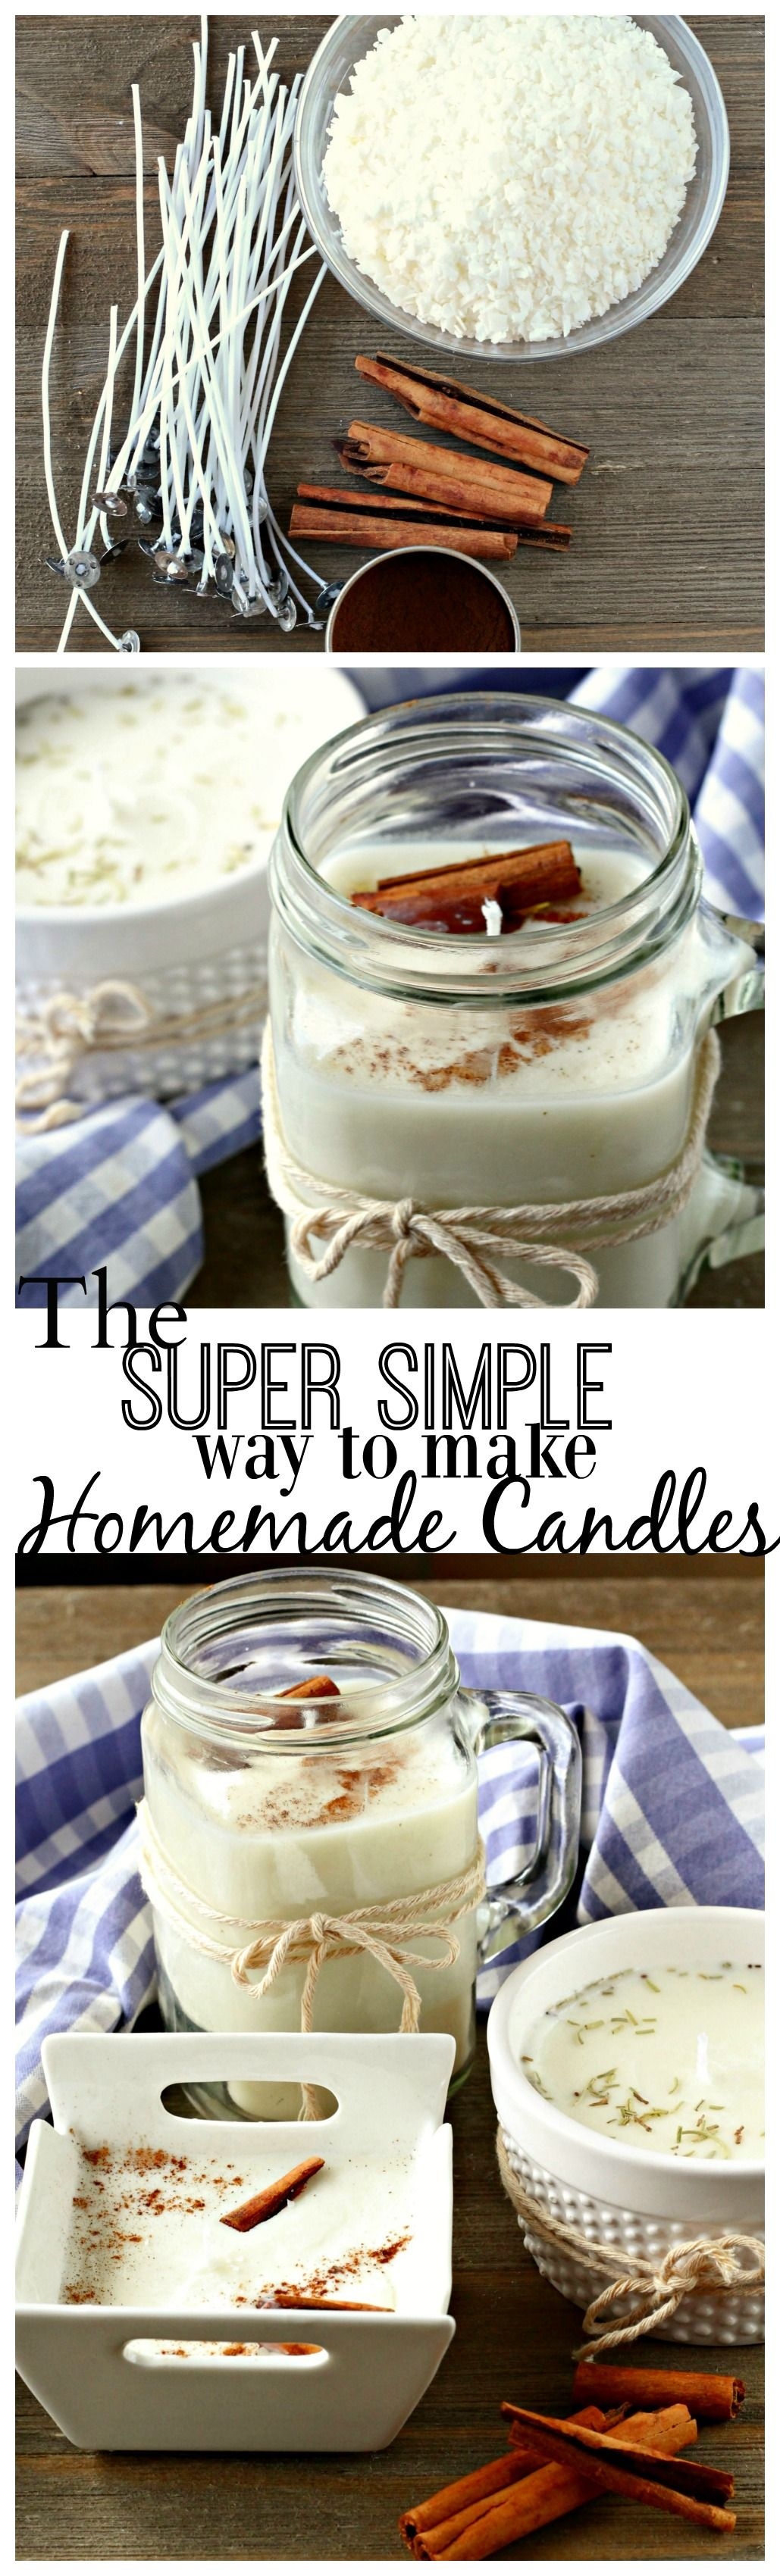 homemade candles the easy way stimulatethesenses ad candles pinterest geschenkideen. Black Bedroom Furniture Sets. Home Design Ideas